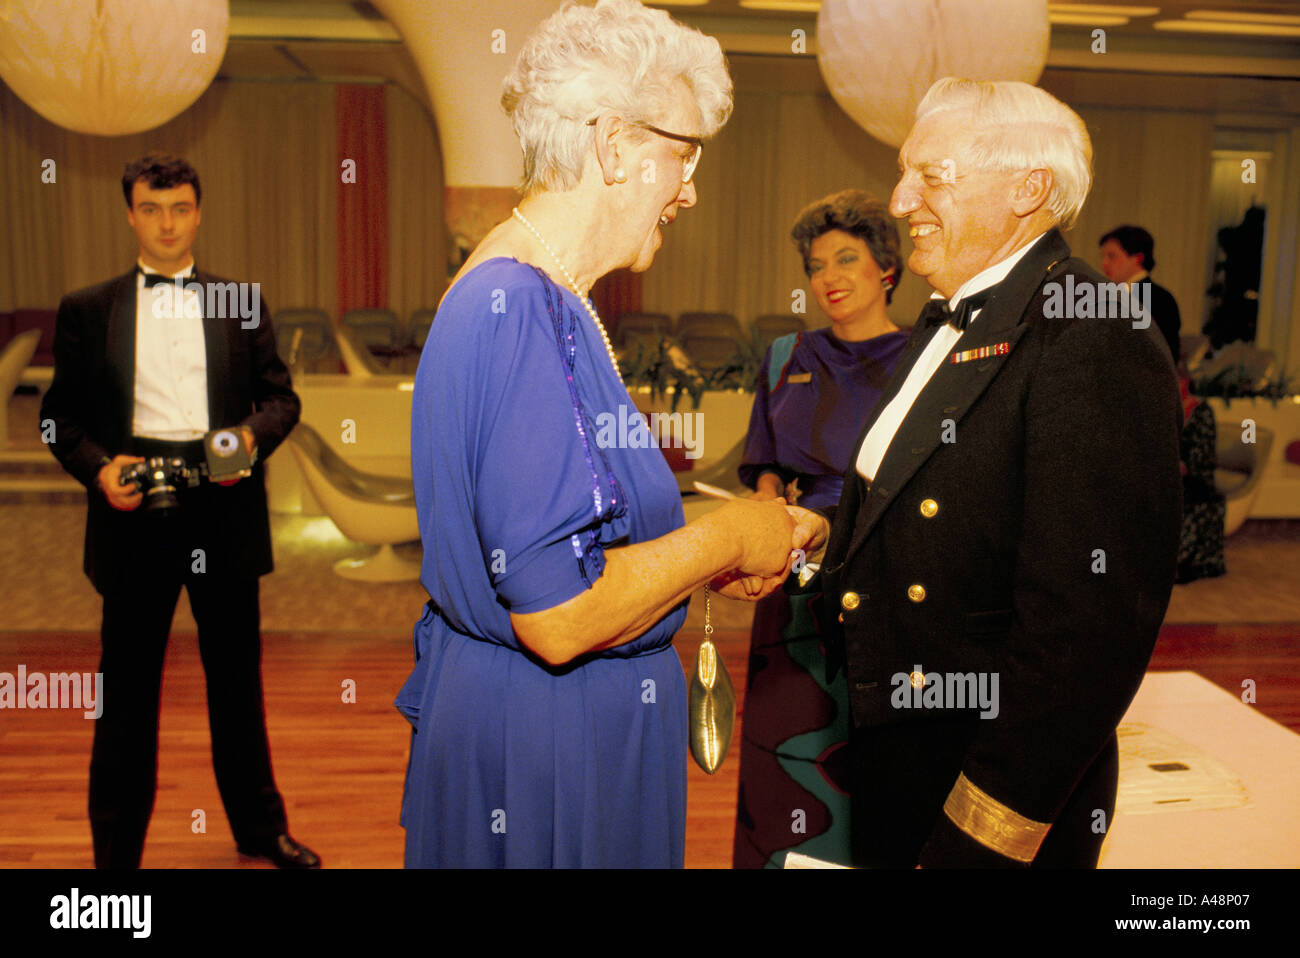 Captain of The cruise liner QE2 meeting passengers at his coctail party before crossing the atlantic - Stock Image